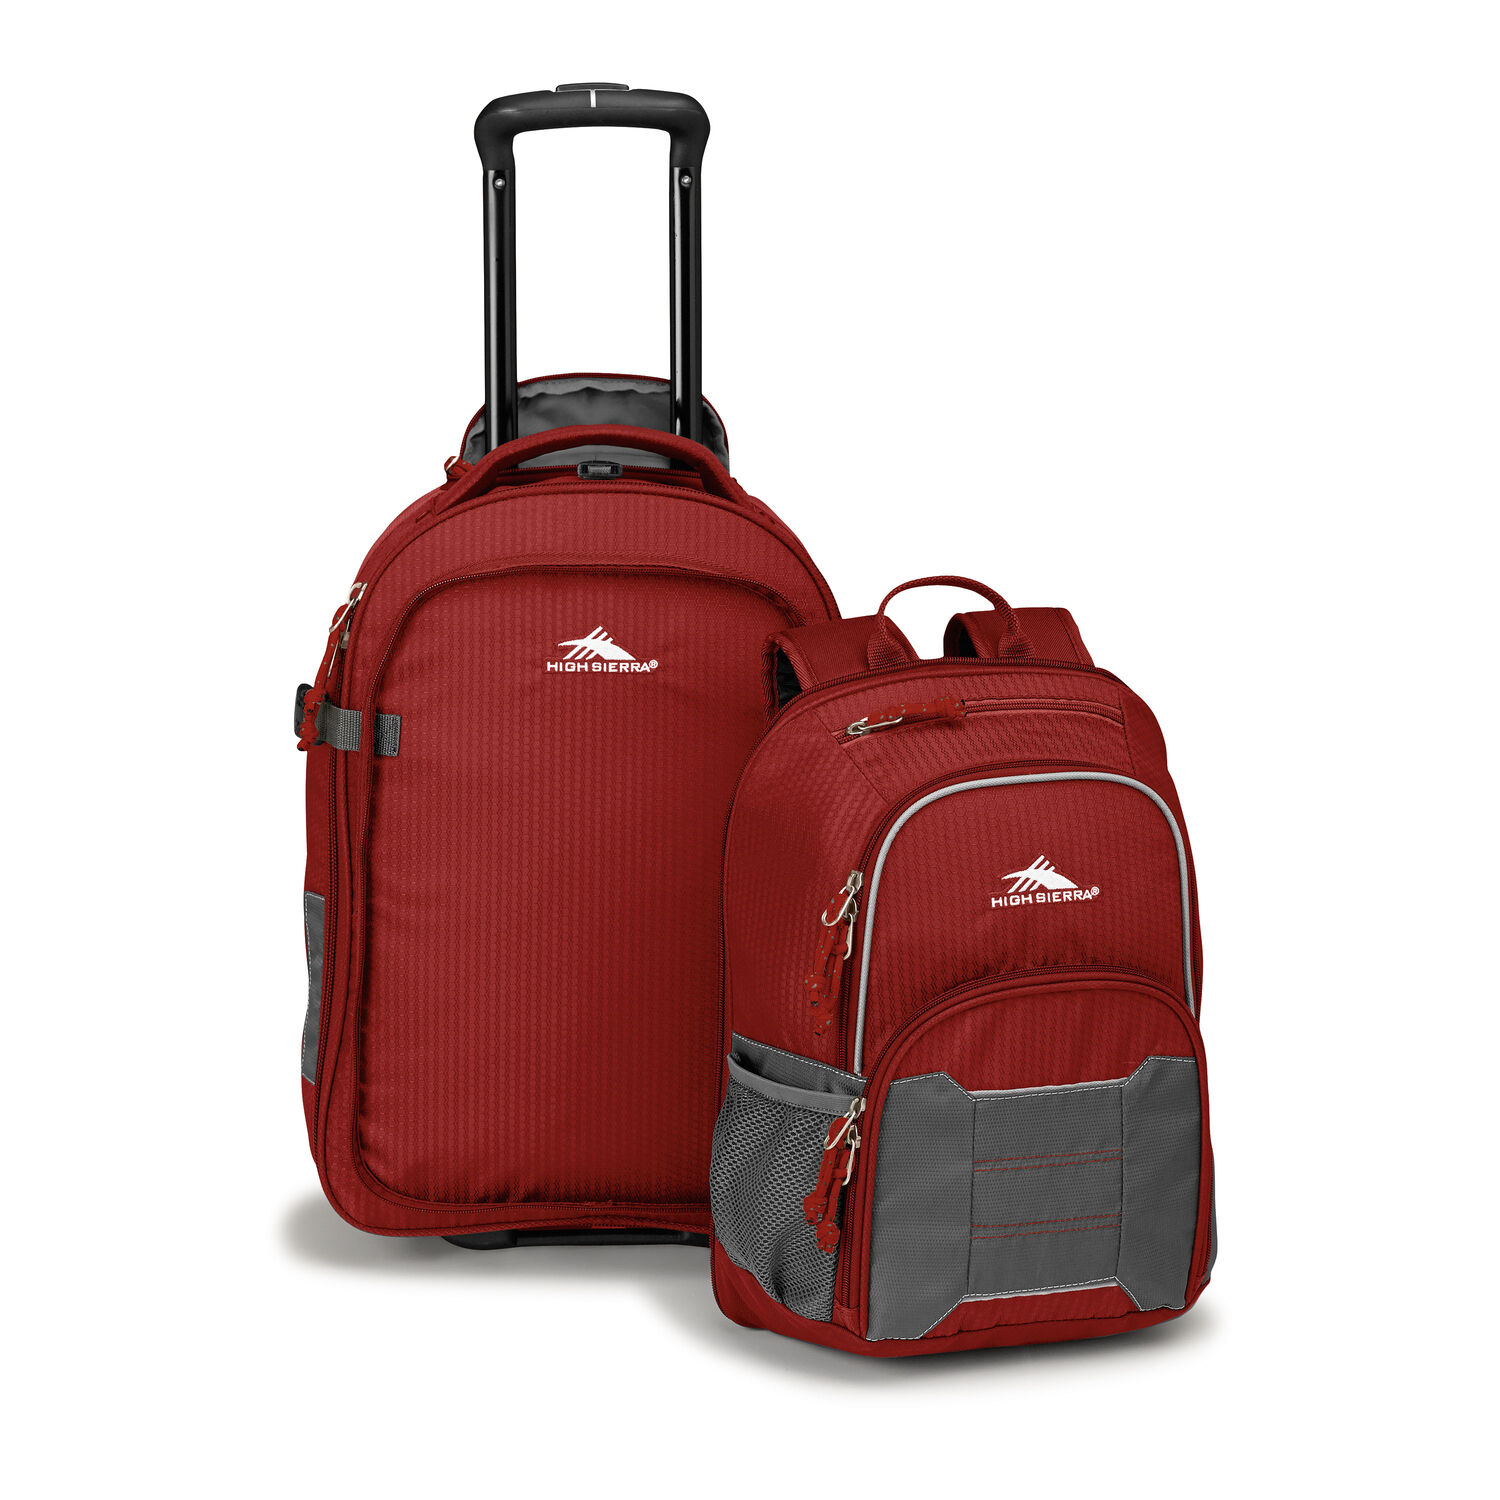 fefca001d1e7 High Sierra Ultimate Access 2.0 Carry-On Wheeled Backpack with ...